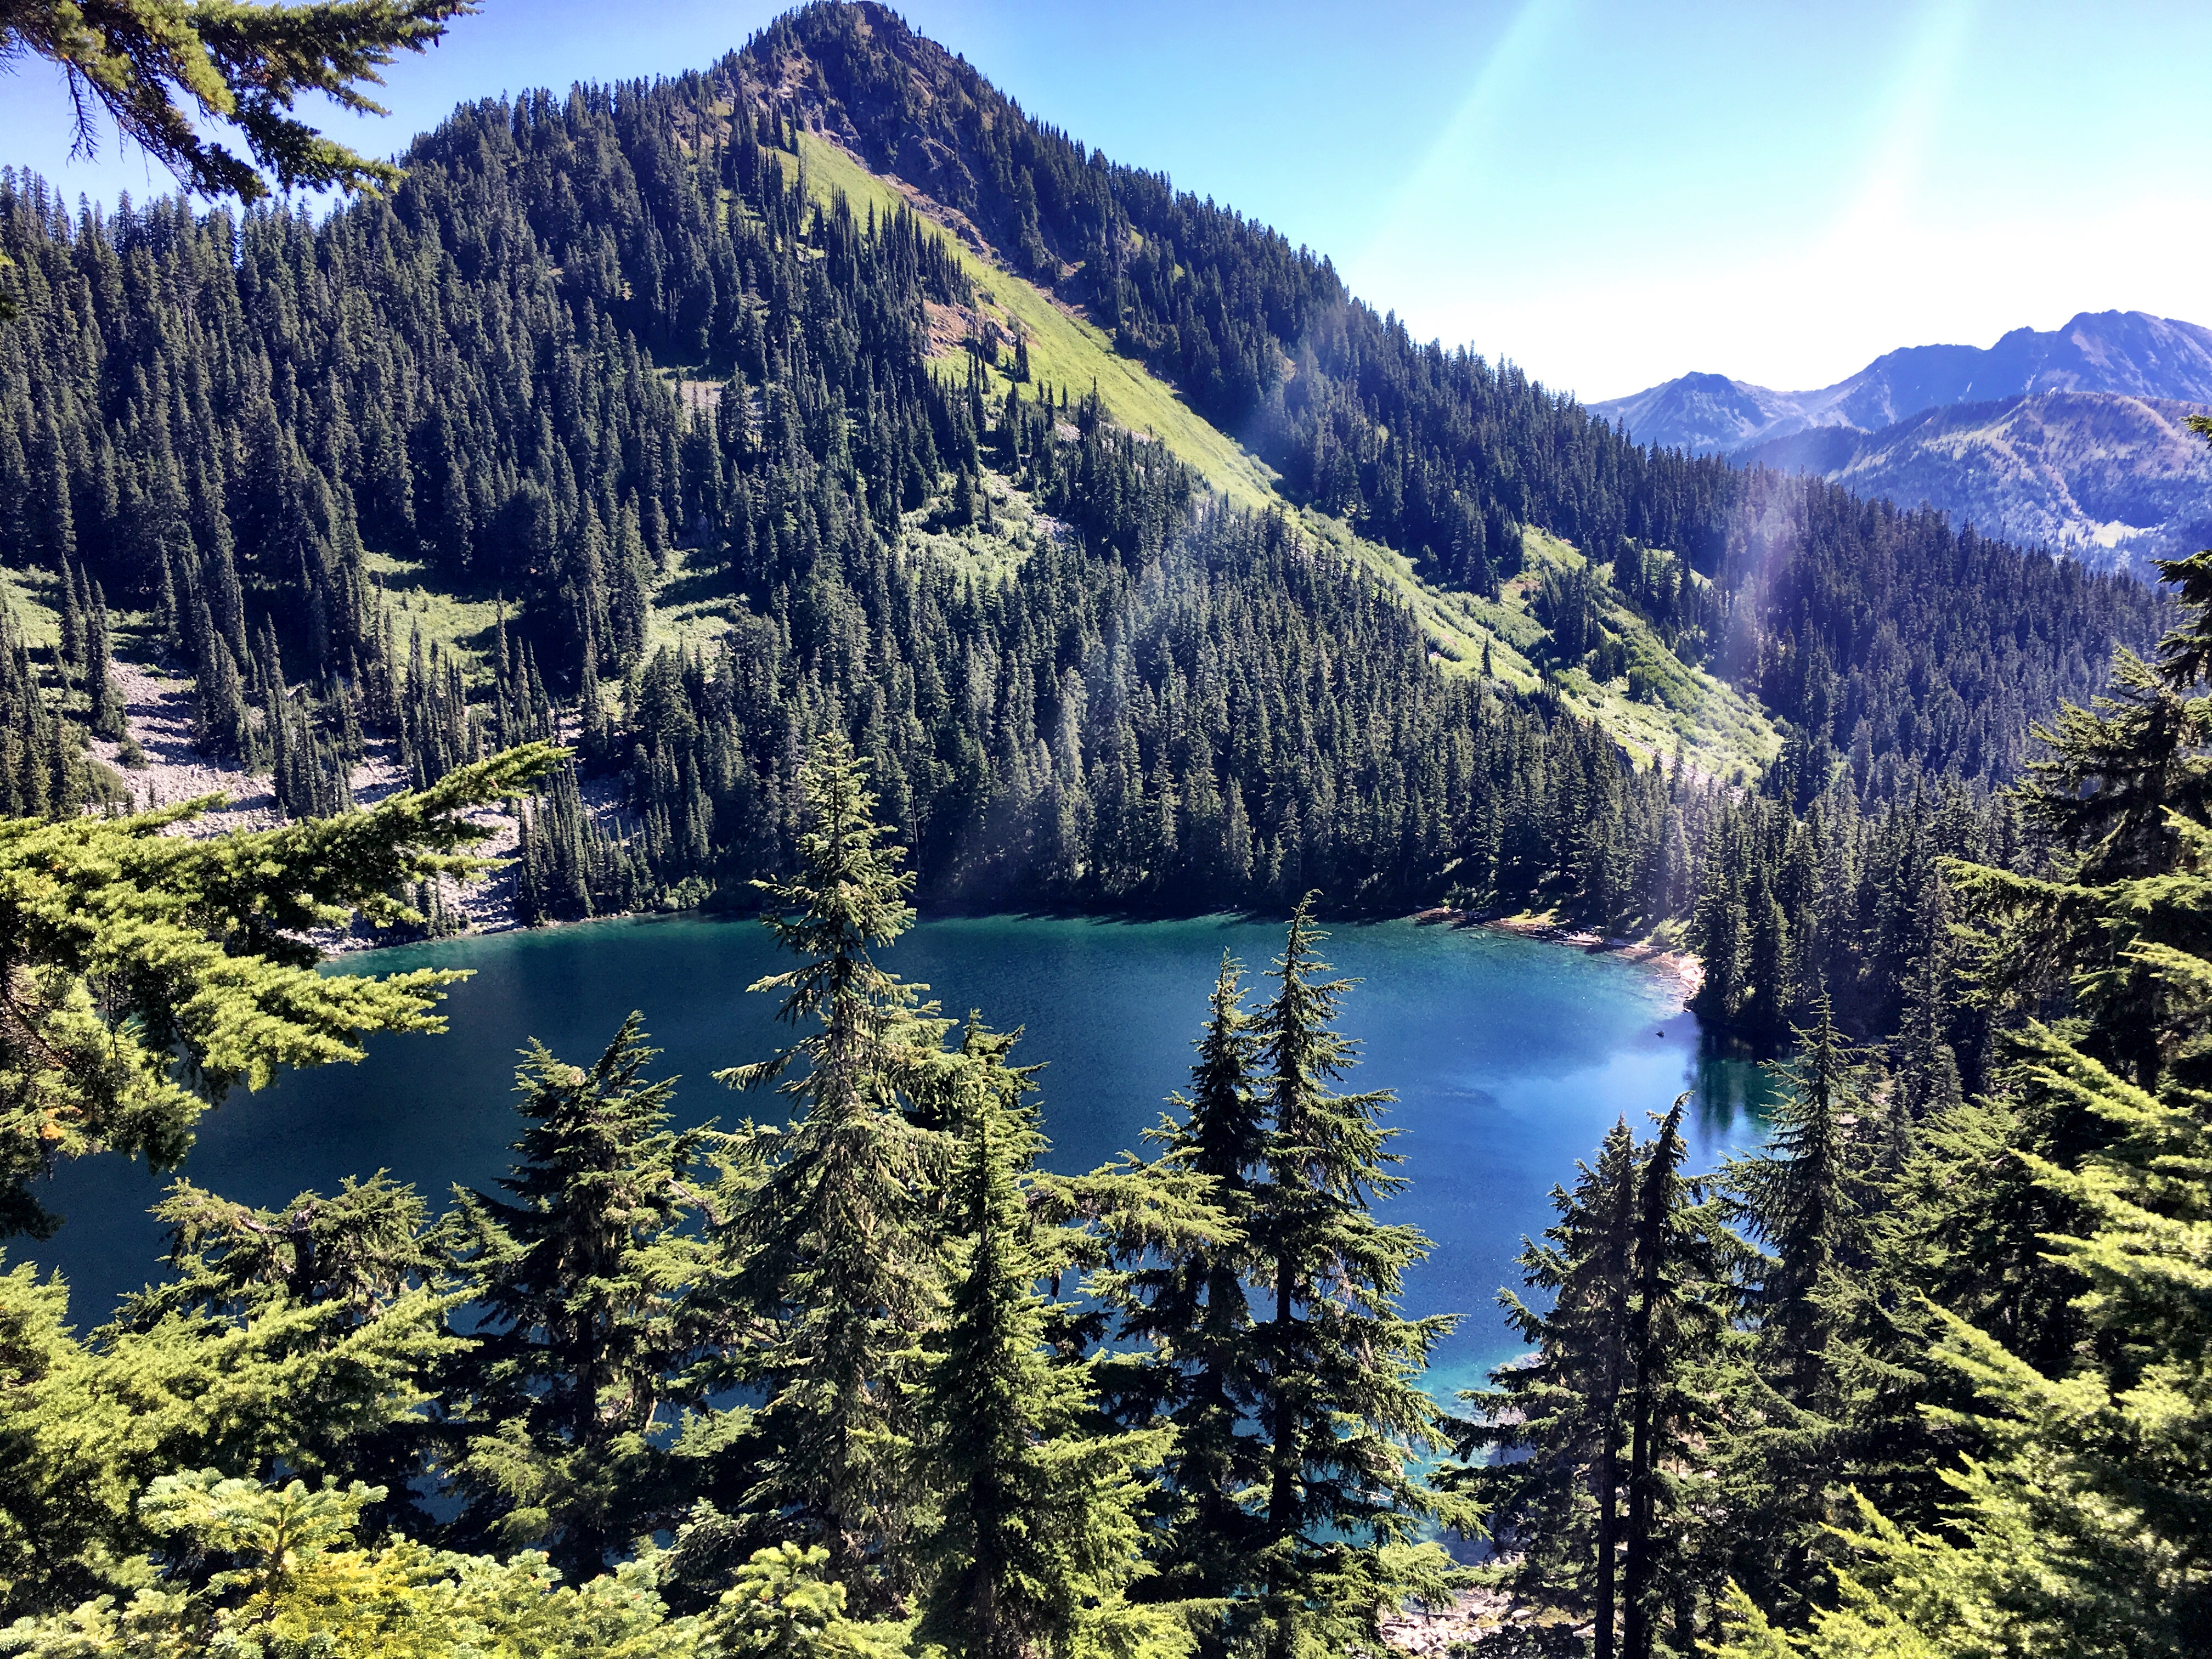 Surprise Lake on Stevens Pass to Snoqualmie Pass adventure